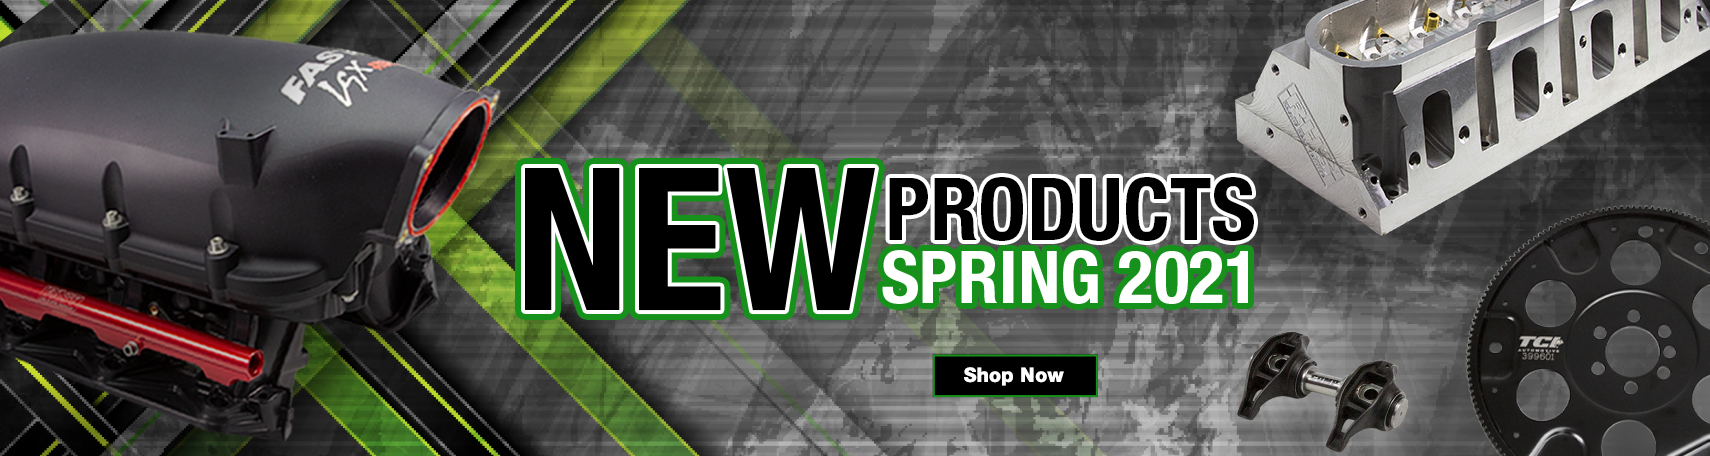 New Products Spring 21